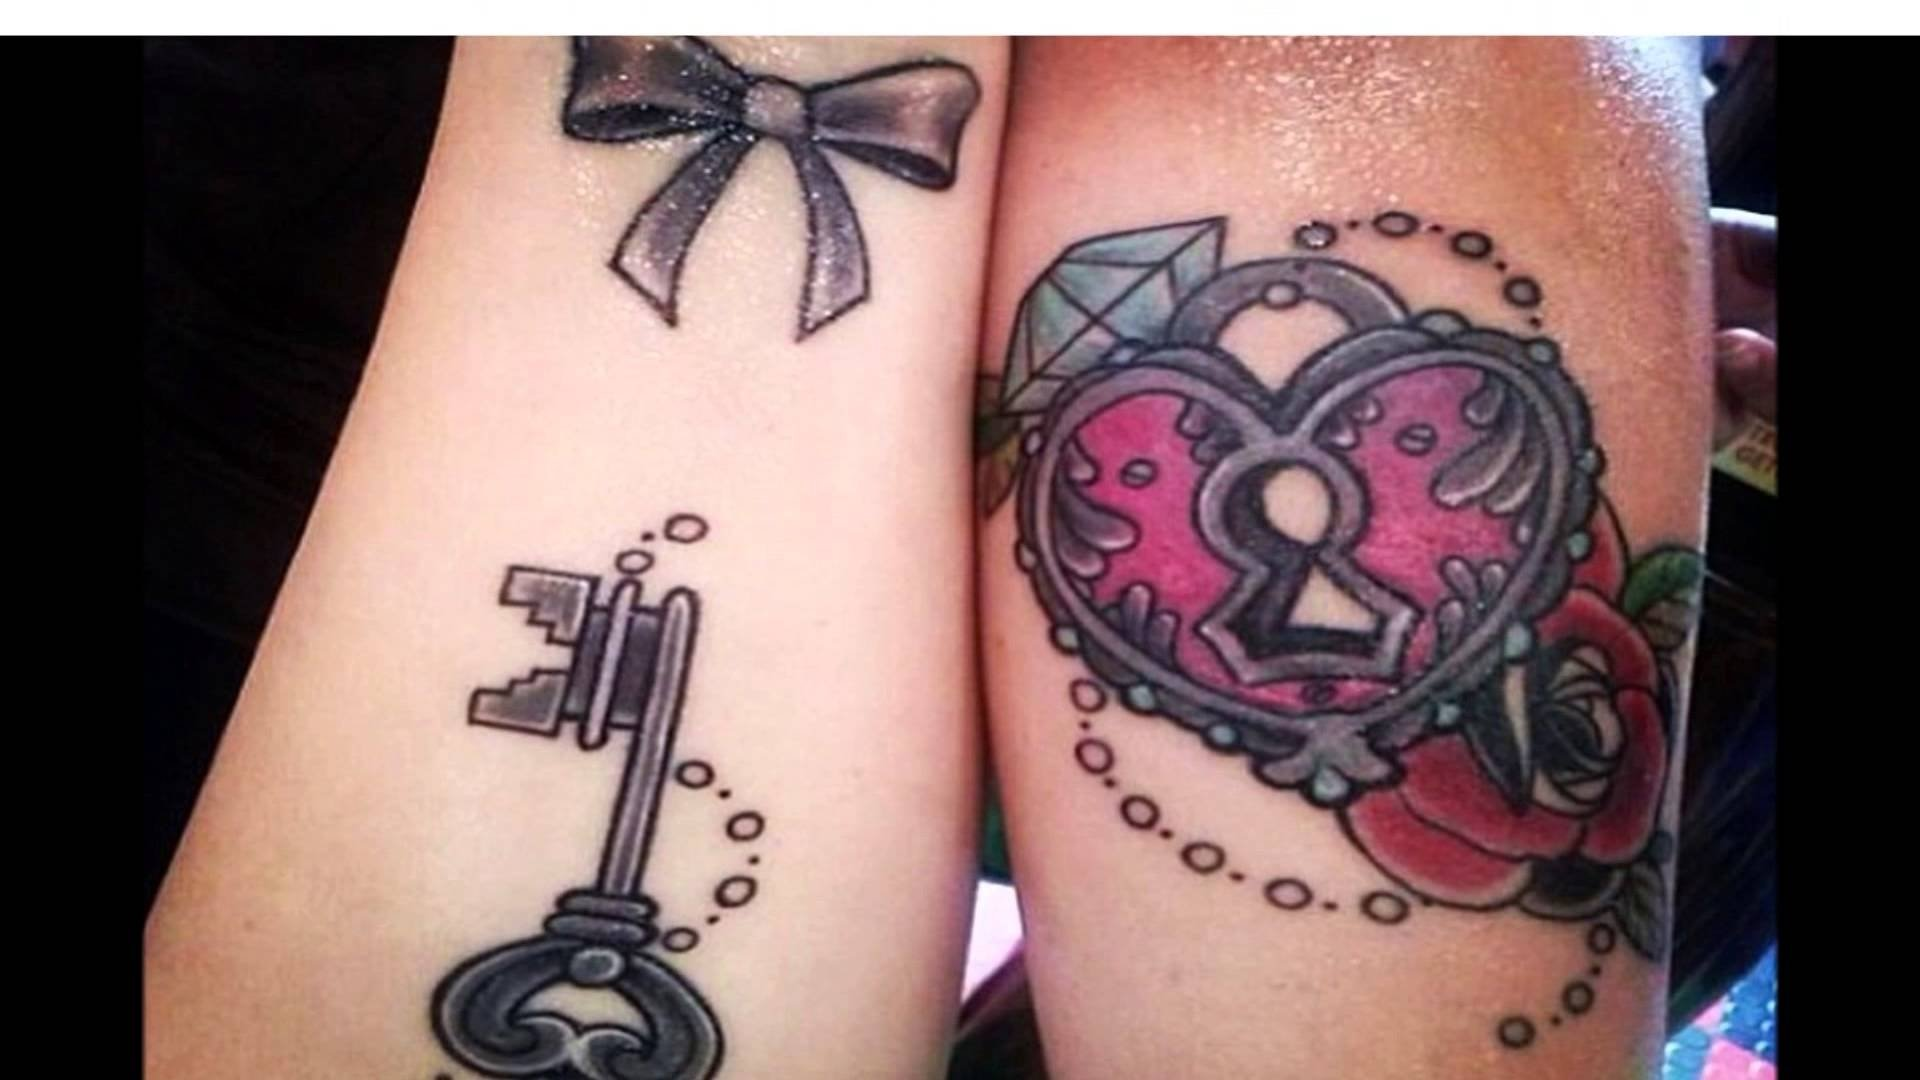 his and her tattoo ideas - youtube